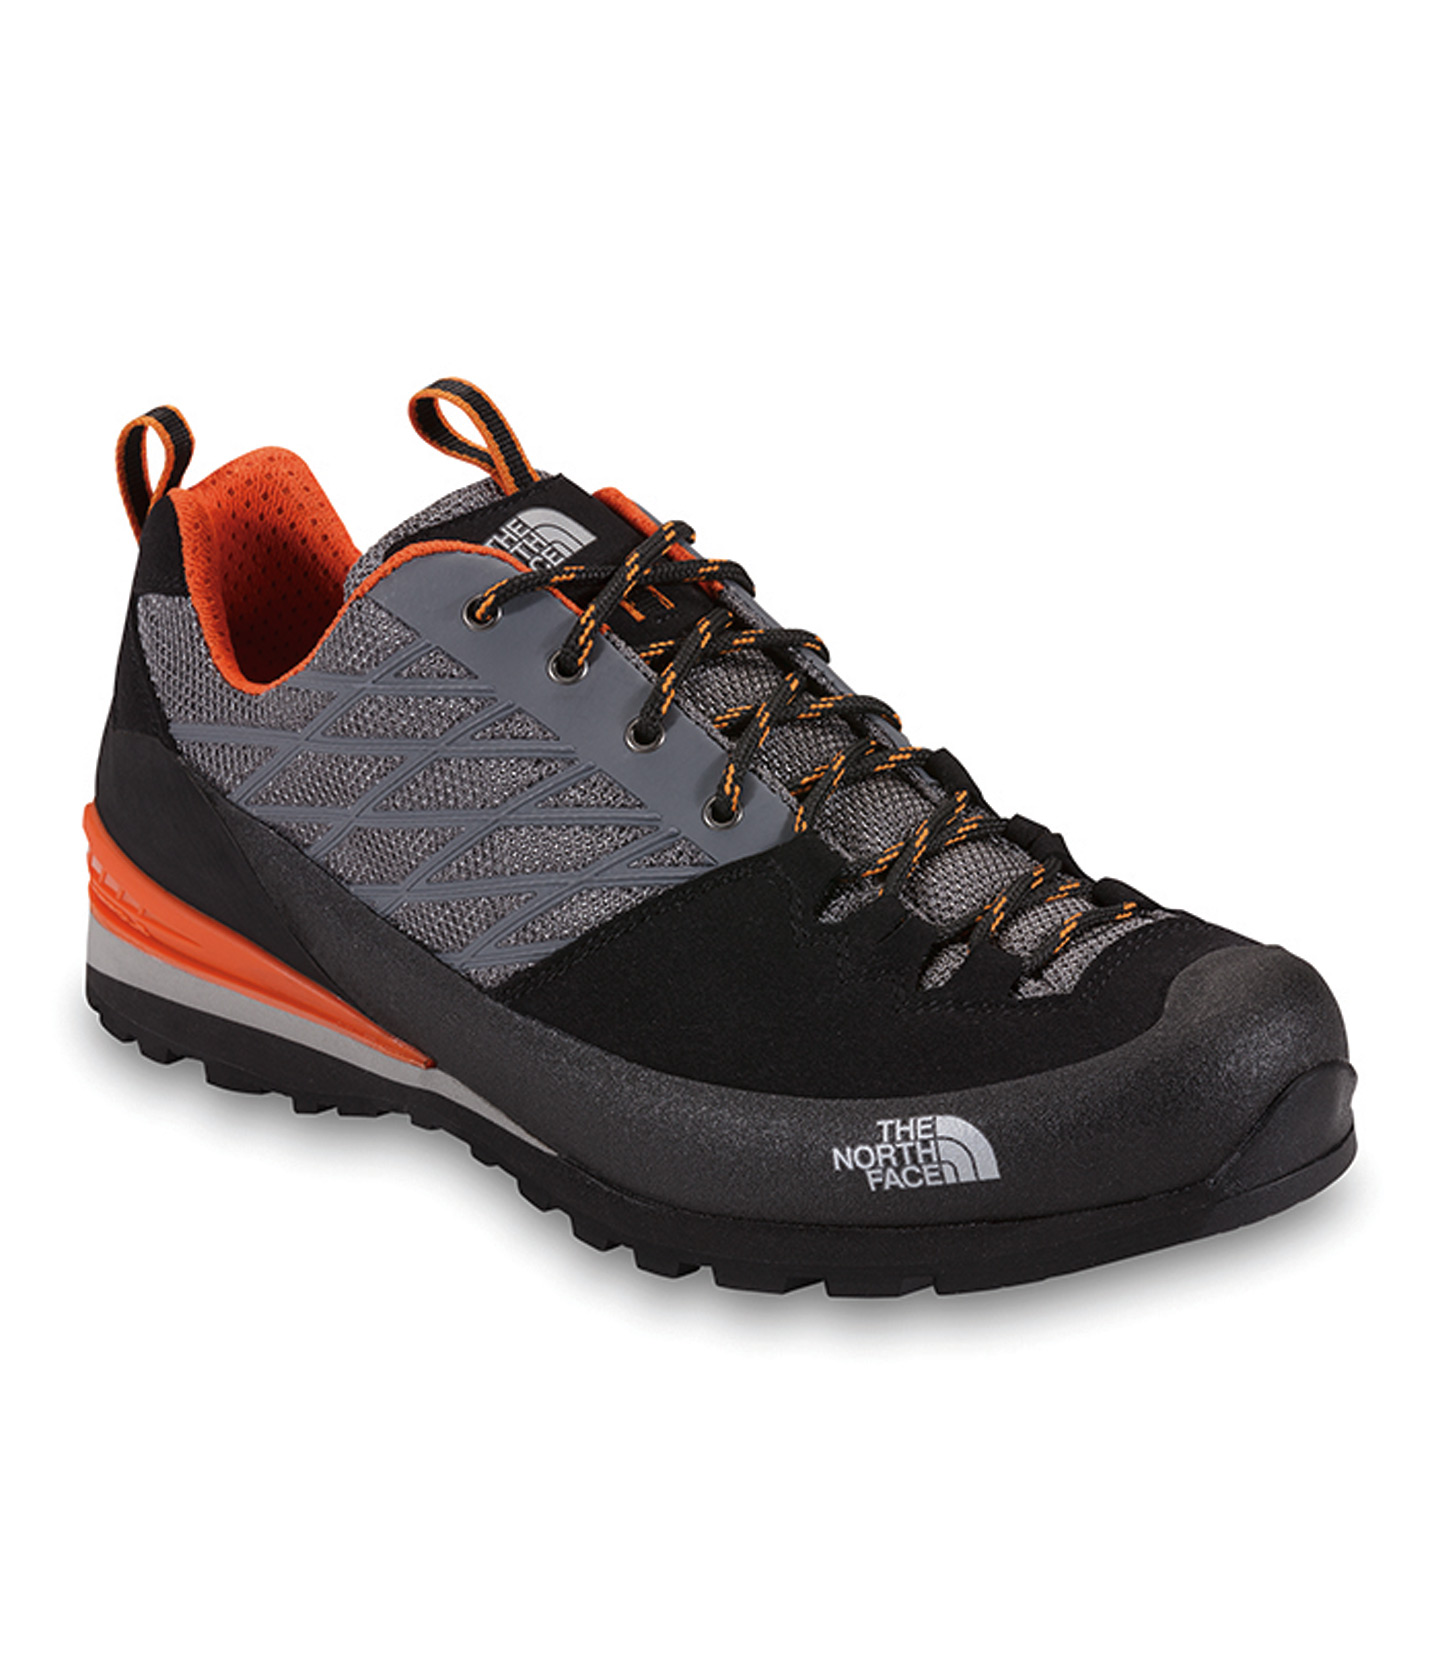 The North Face Verto Plasma – Climbing Gear Review ...